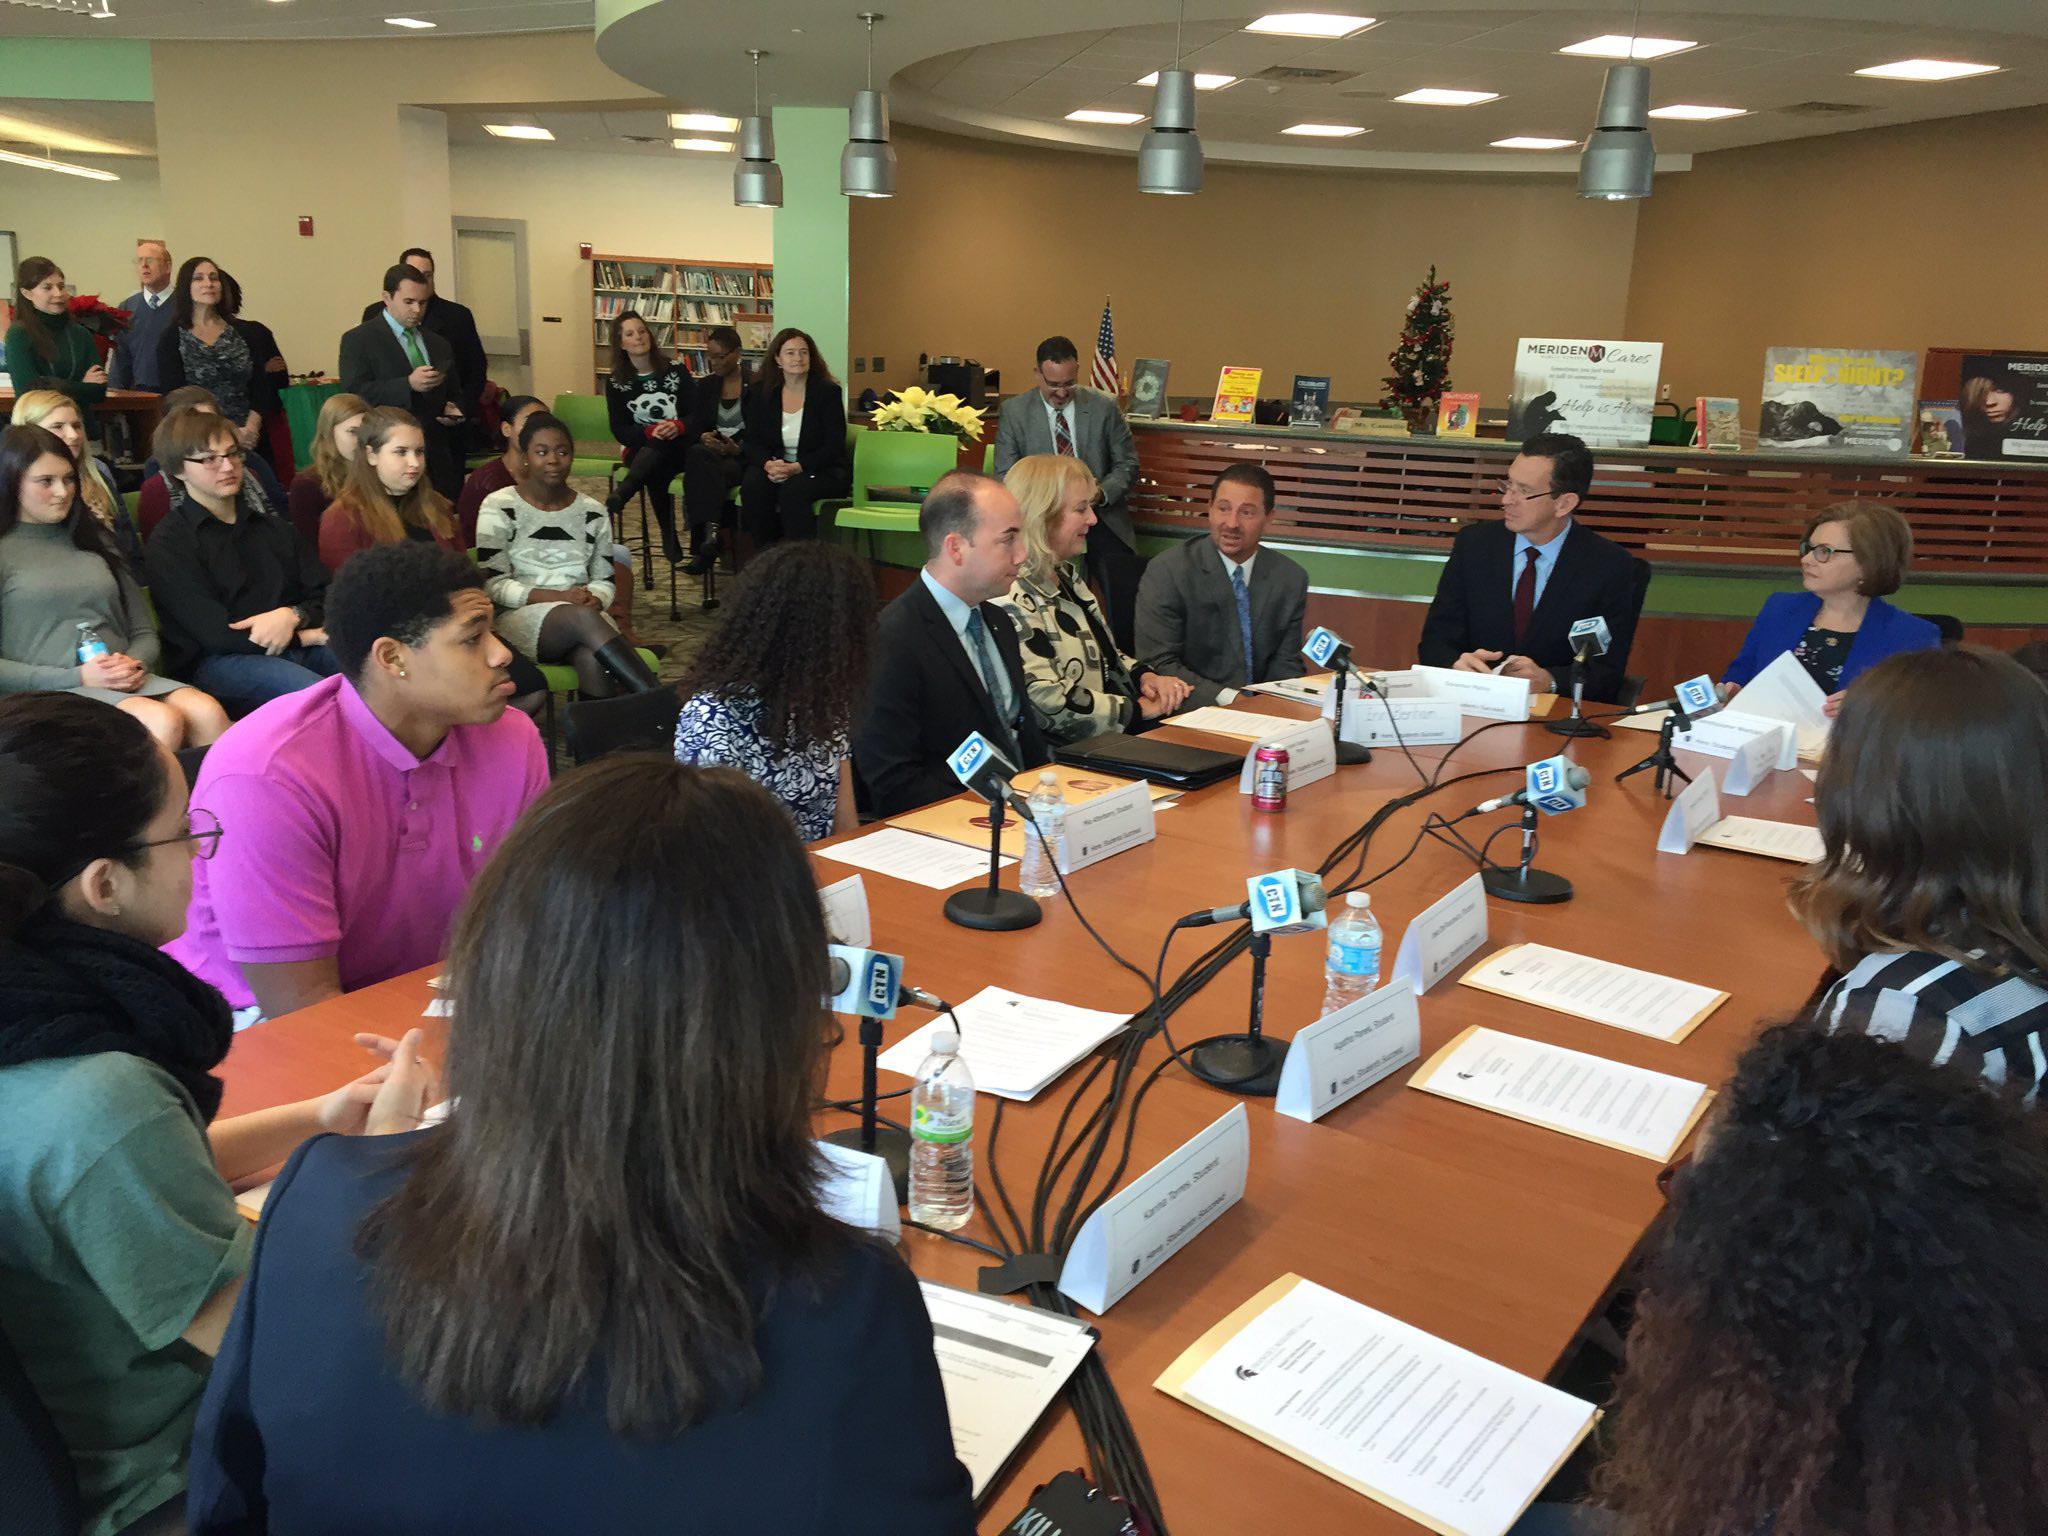 Gov. Dannel P. Malloy, state and local officials discuss youth homelessness with students at Maloney High School during a roundtable discussion Wednesday. | Courtesy of state Department of Education